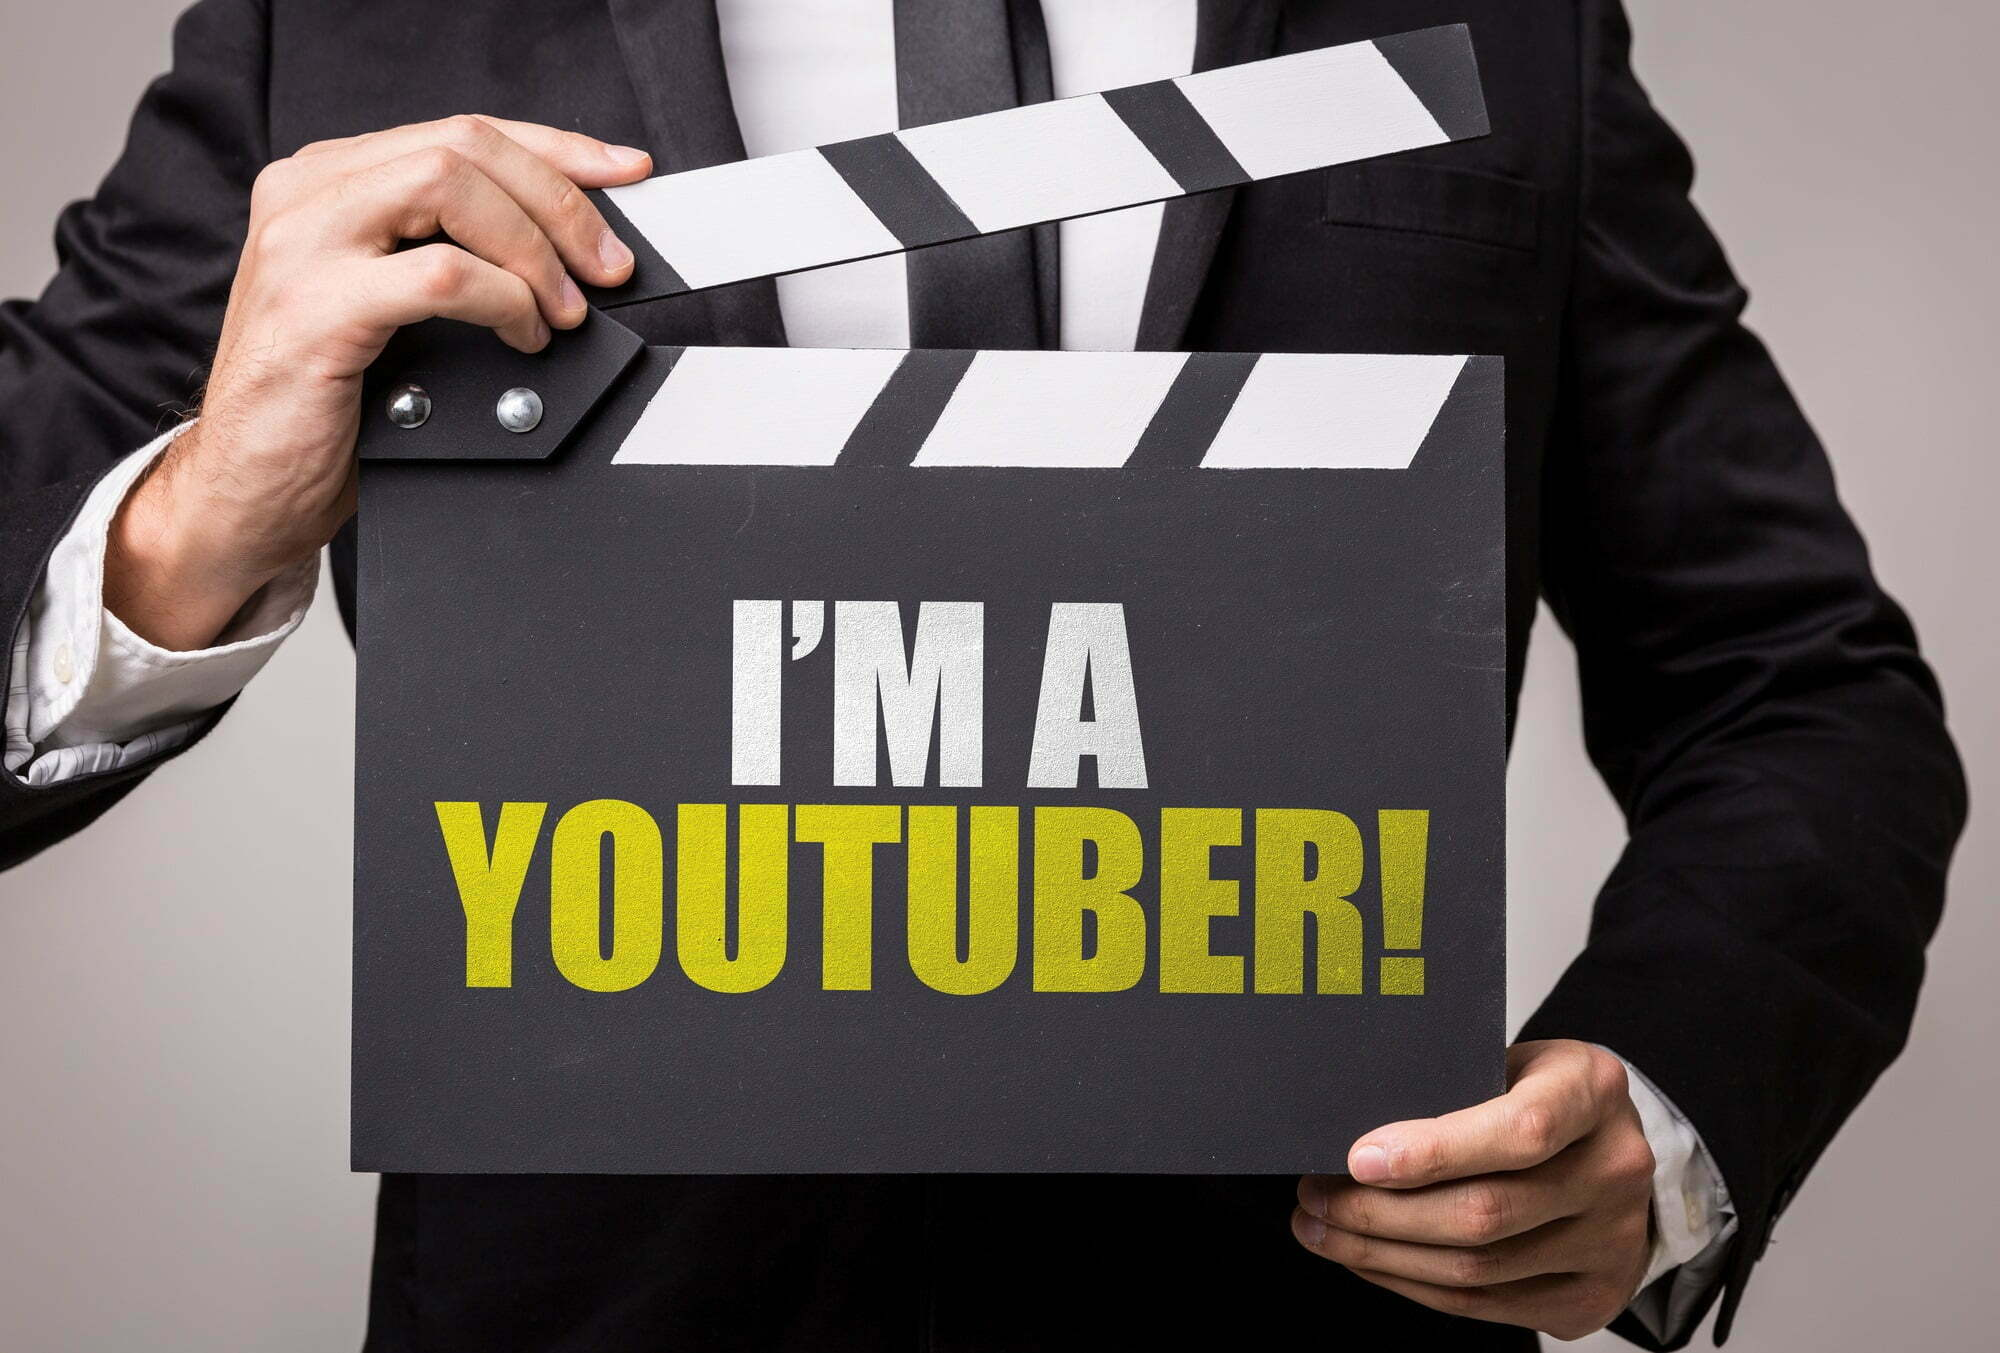 23 How to Be Successful on YouTube A Guide for Businesses - Essential Ways to Promote Your YouTube Videos